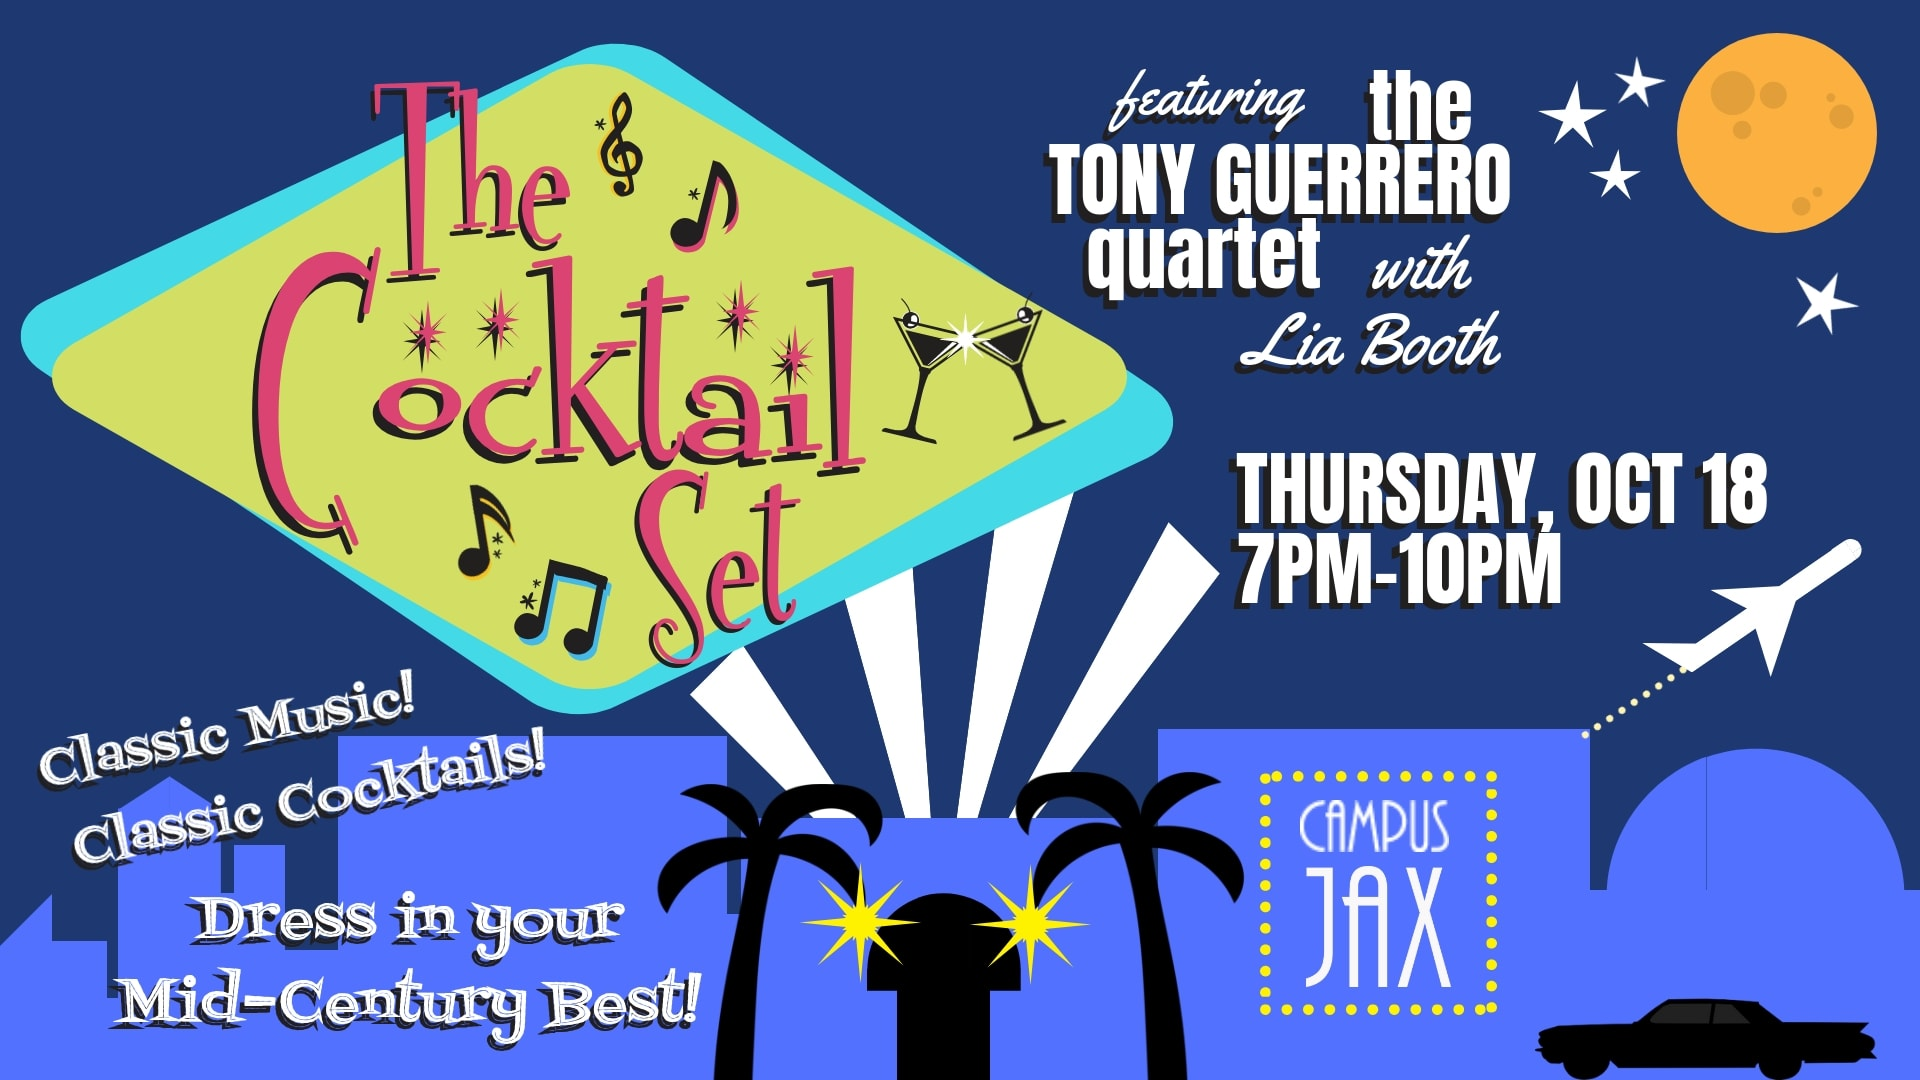 October 18 | THE COCKTAIL SET with TONY GUERRERO